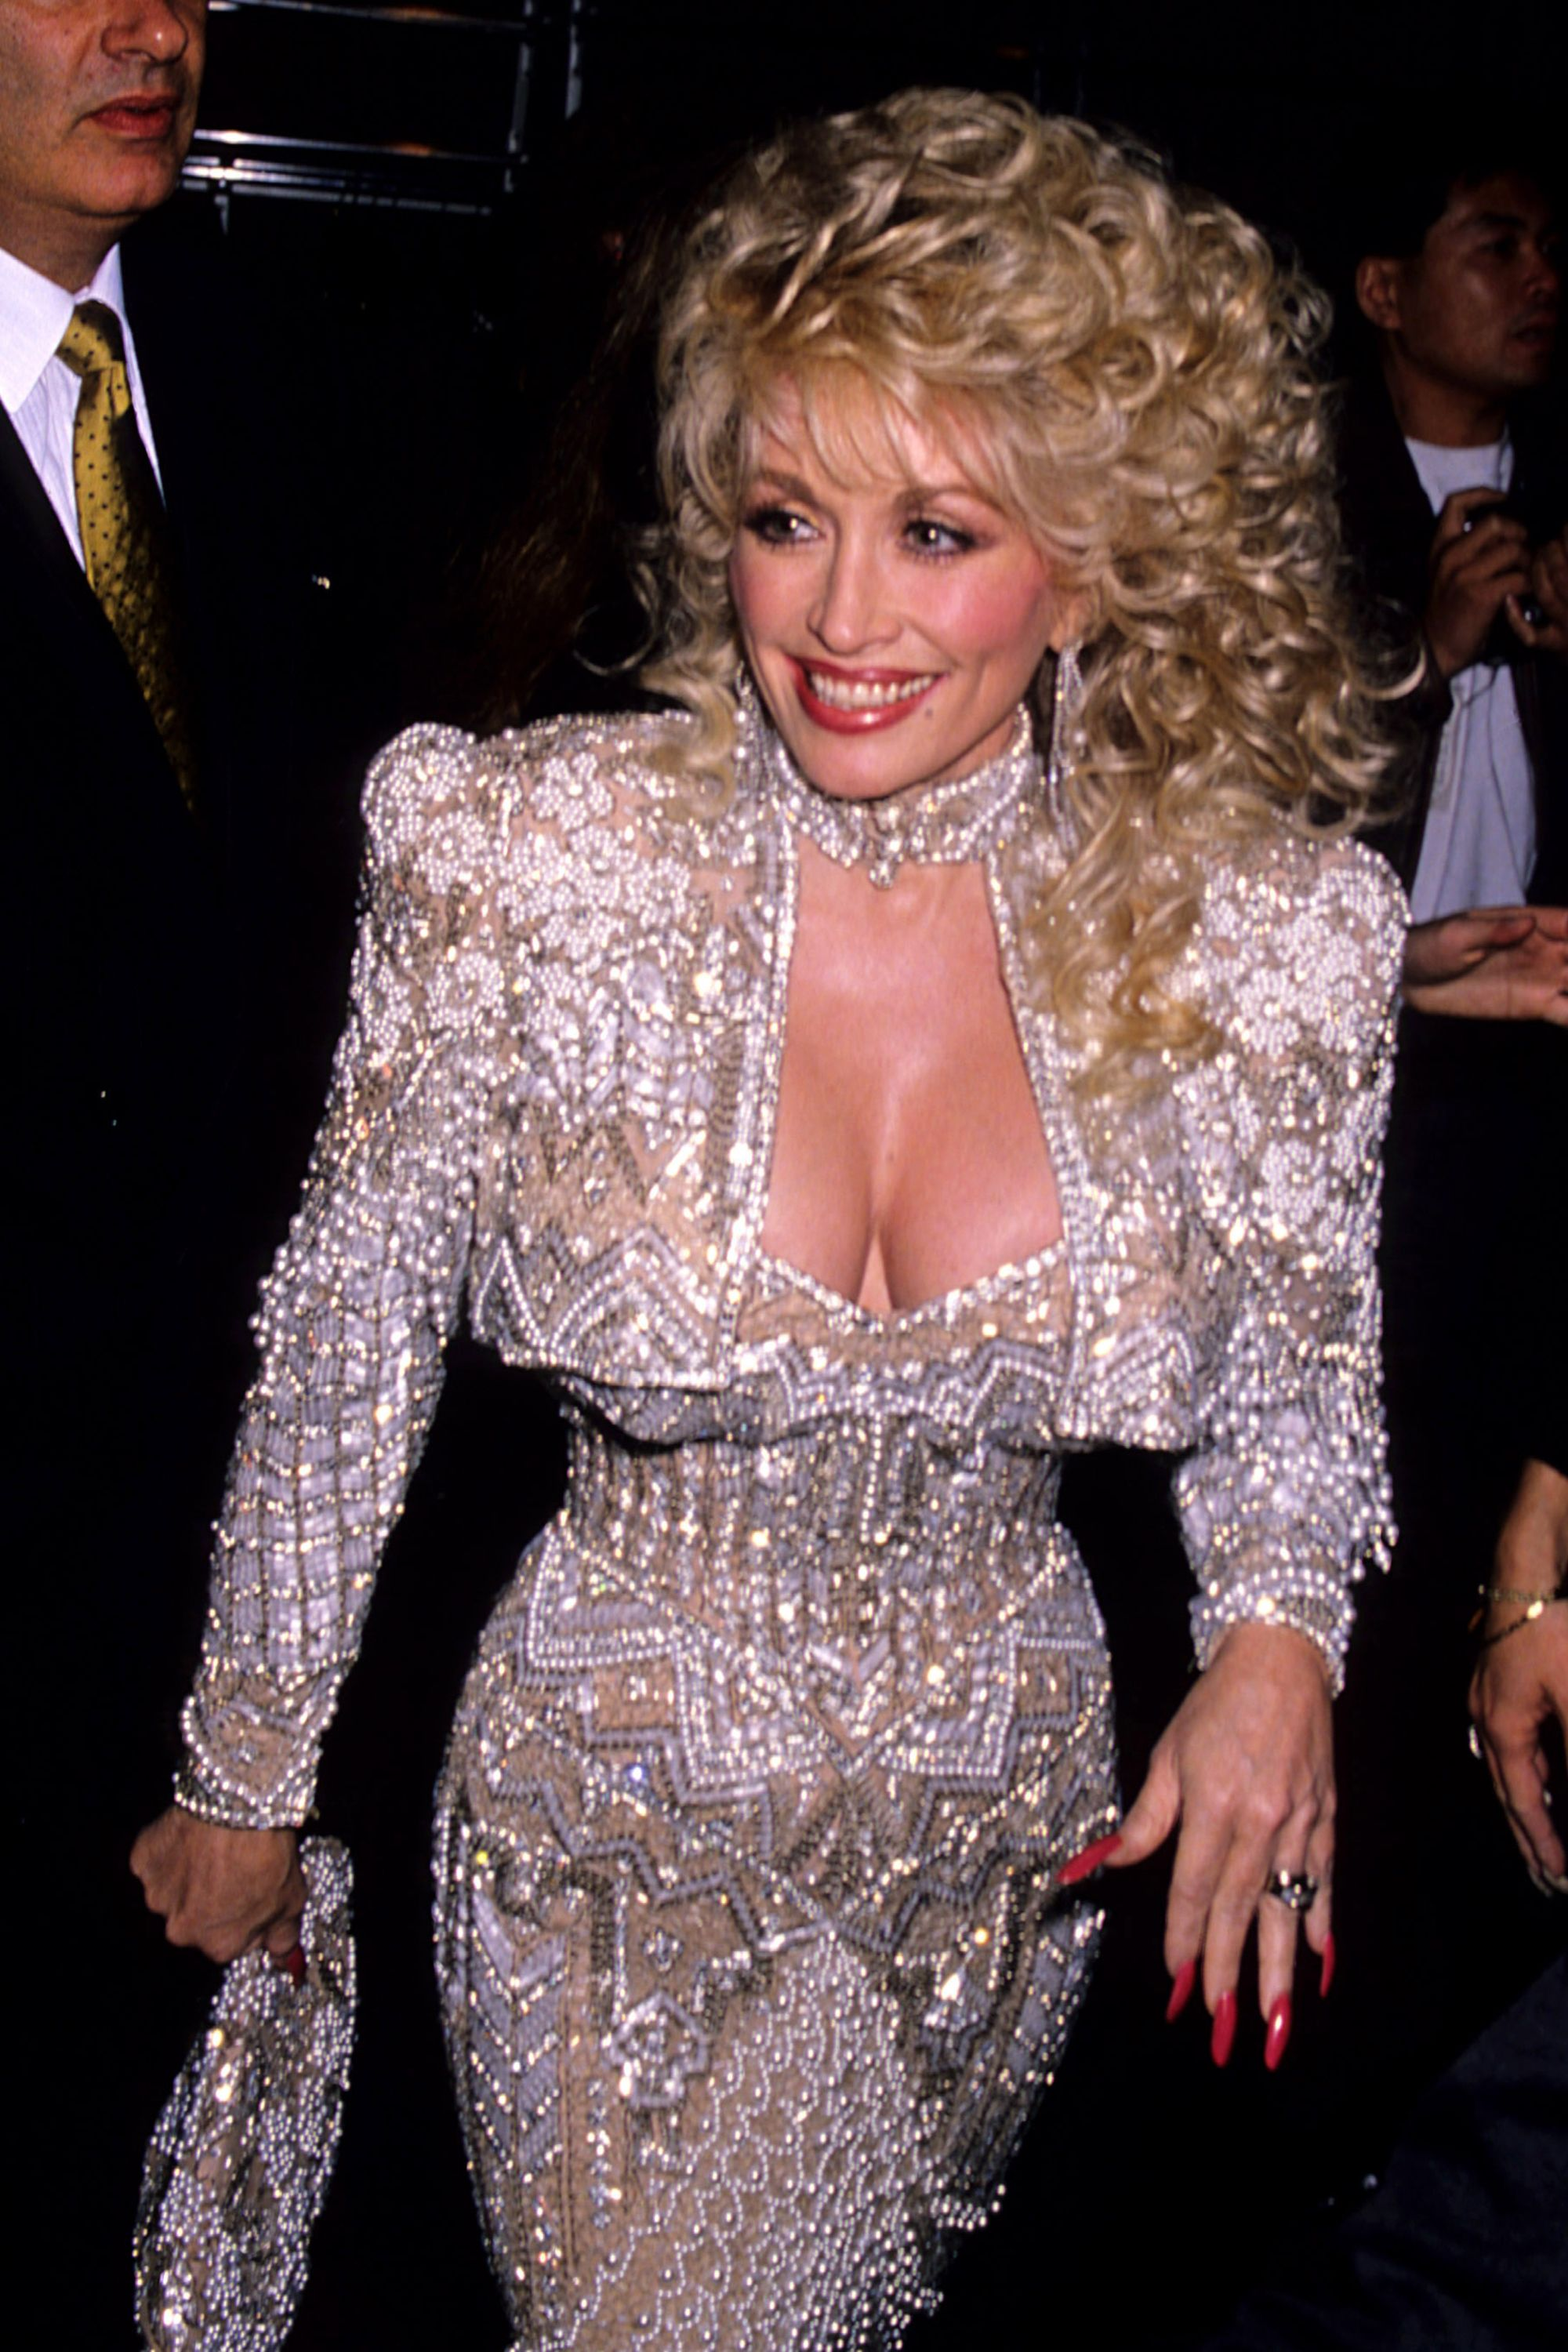 hbz-dolly-parton-1989-gettyimages-755029